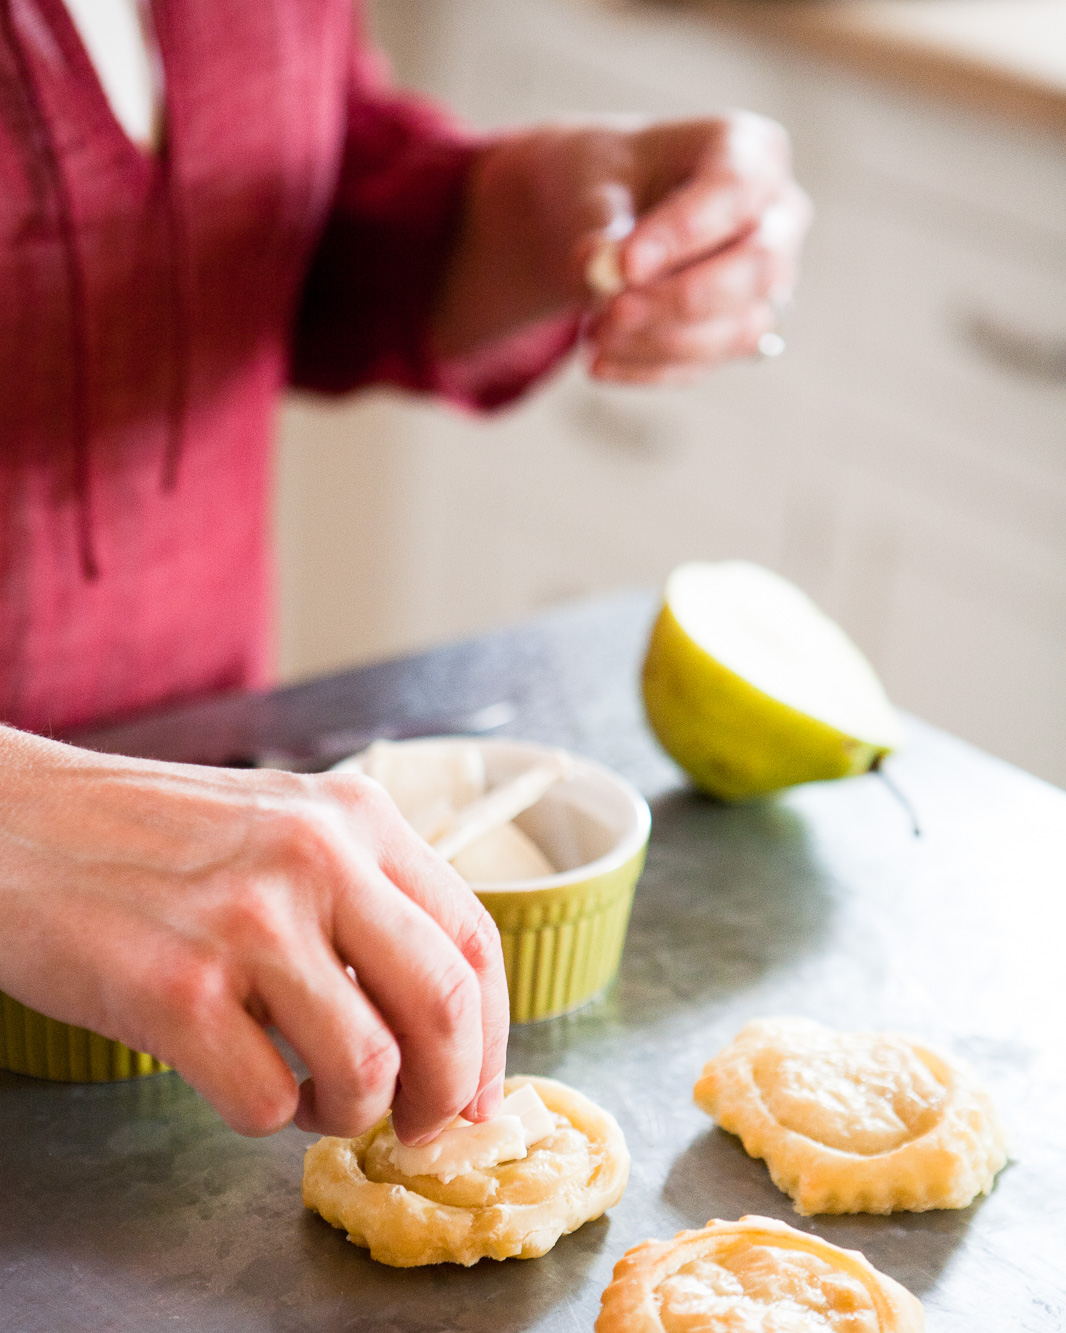 Hands making puff pastry pear and brie cheese tarts.